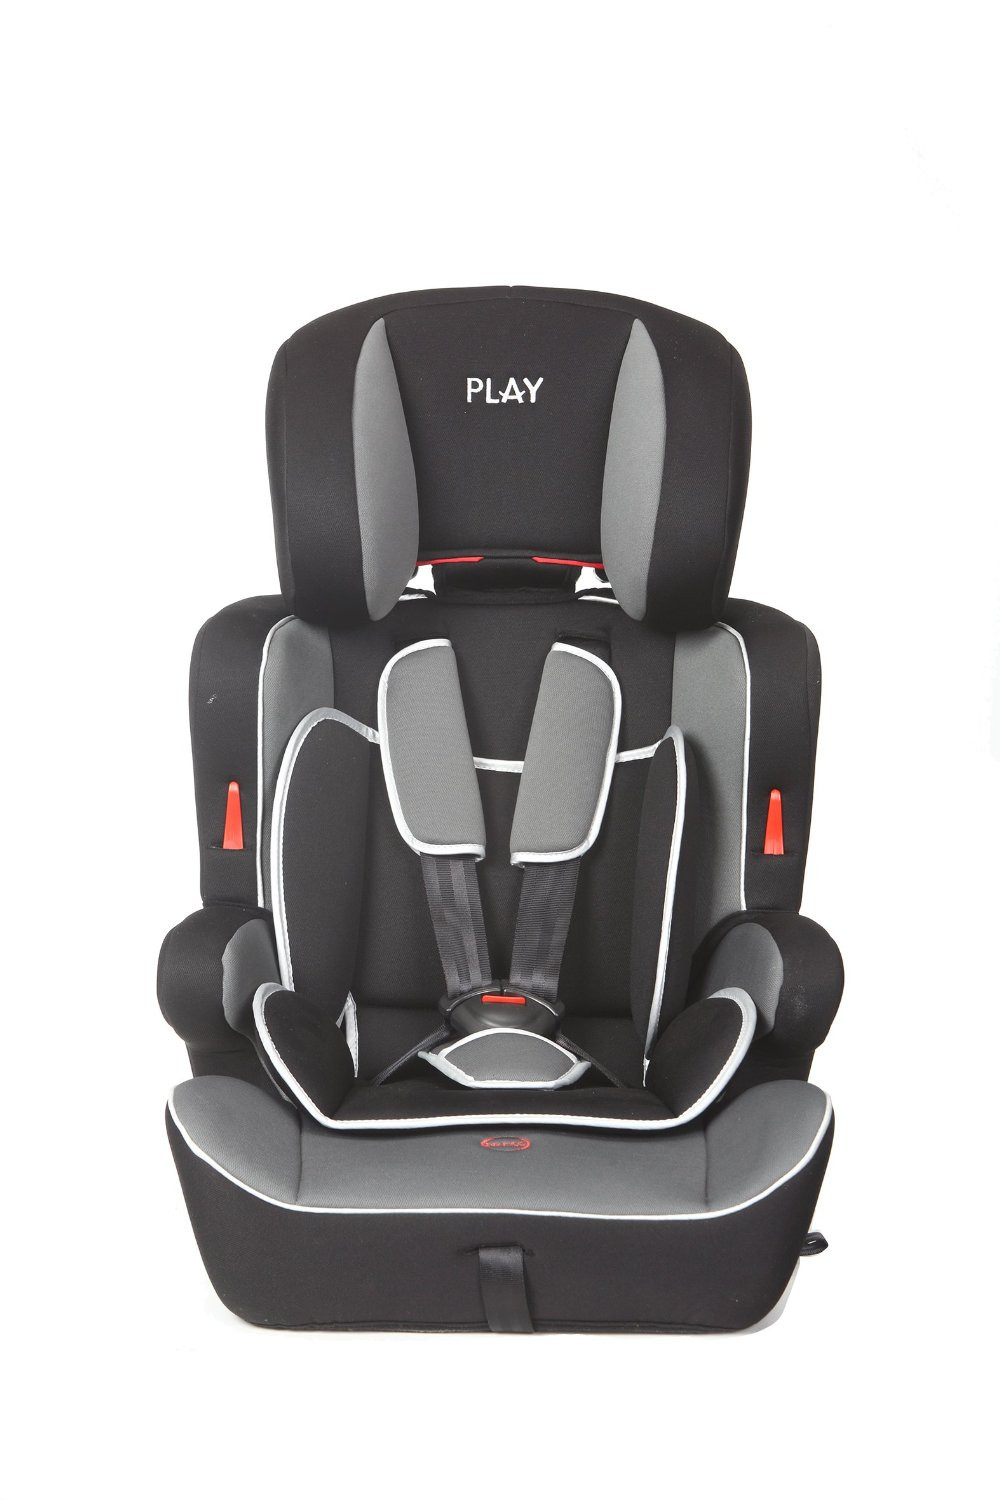 Silla de coche play safe ten grupo 1 2 3 casualplay opiniones - Silla de coche play ...